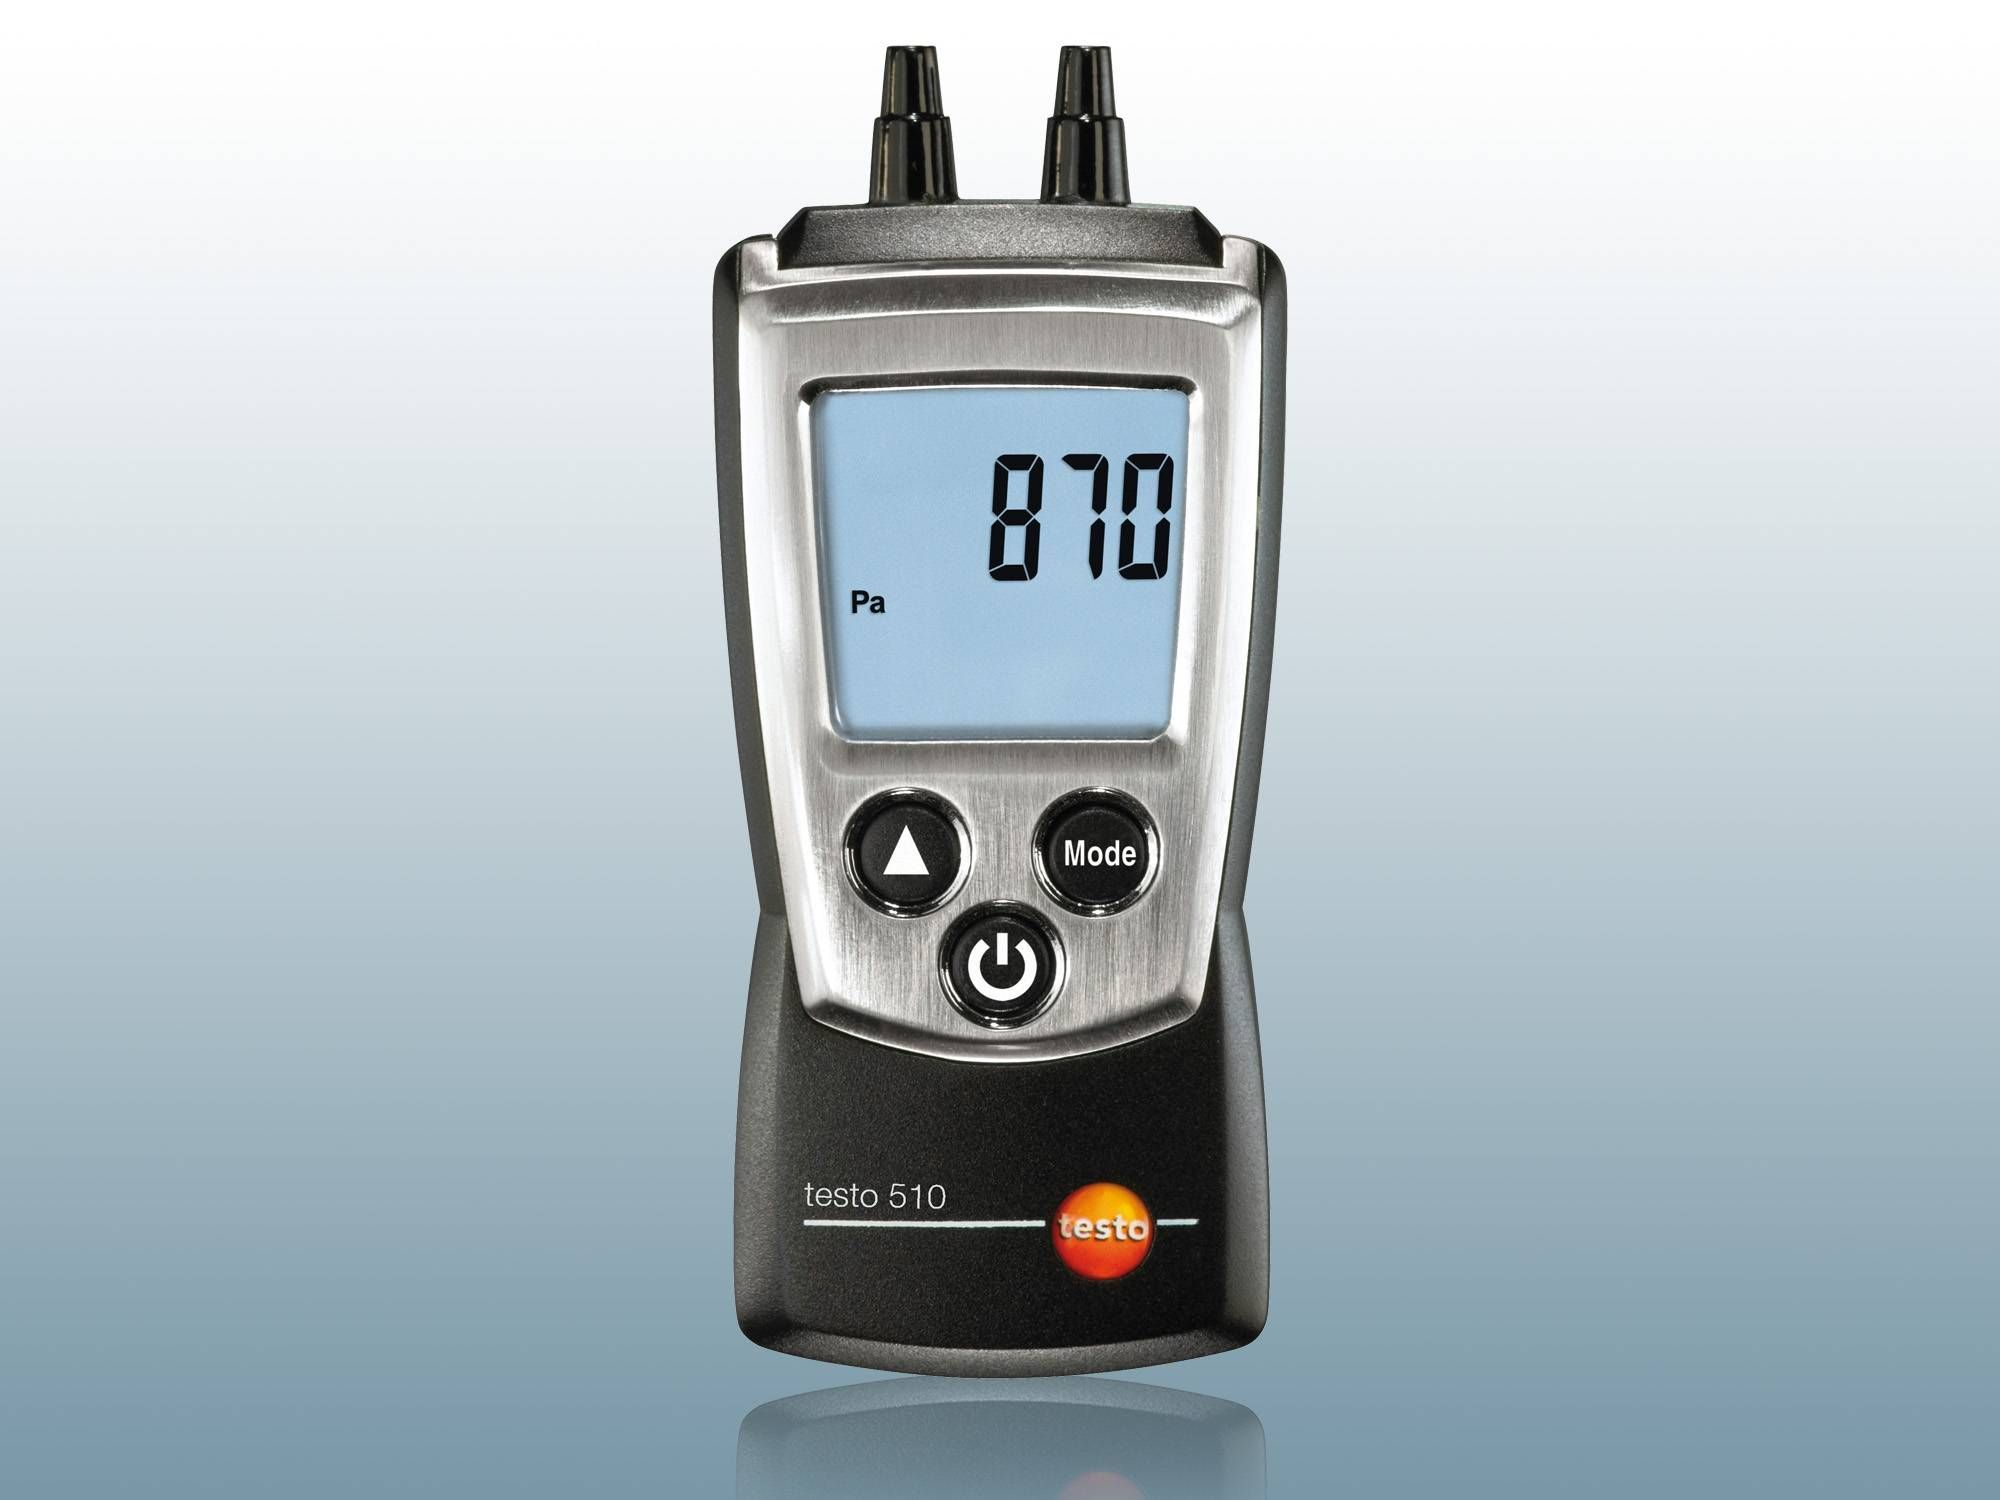 testo 510 kit - differential pressure measuring instrument